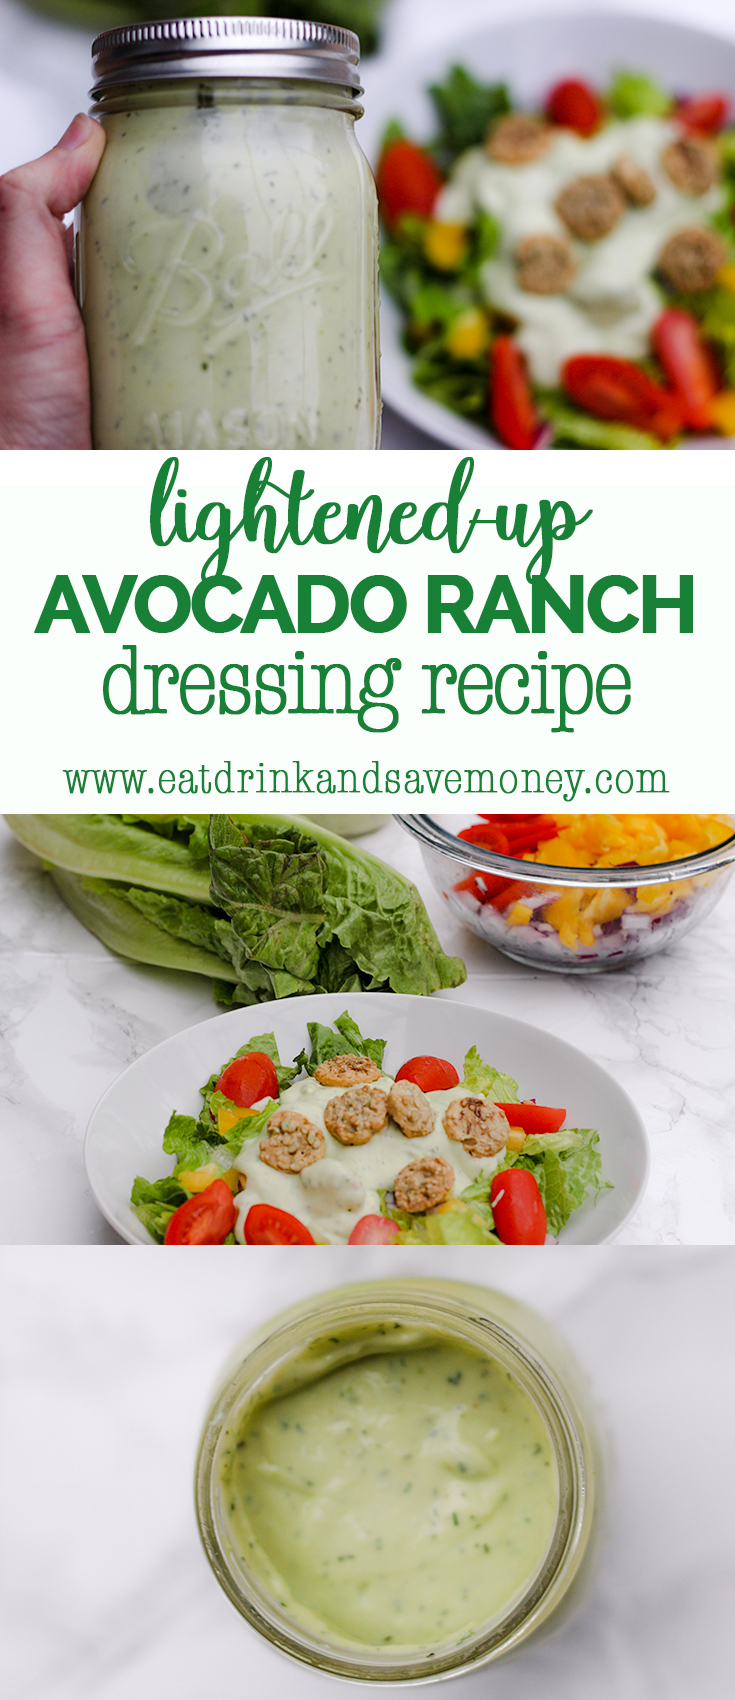 Lightned-up avocado ranch dressing recipe